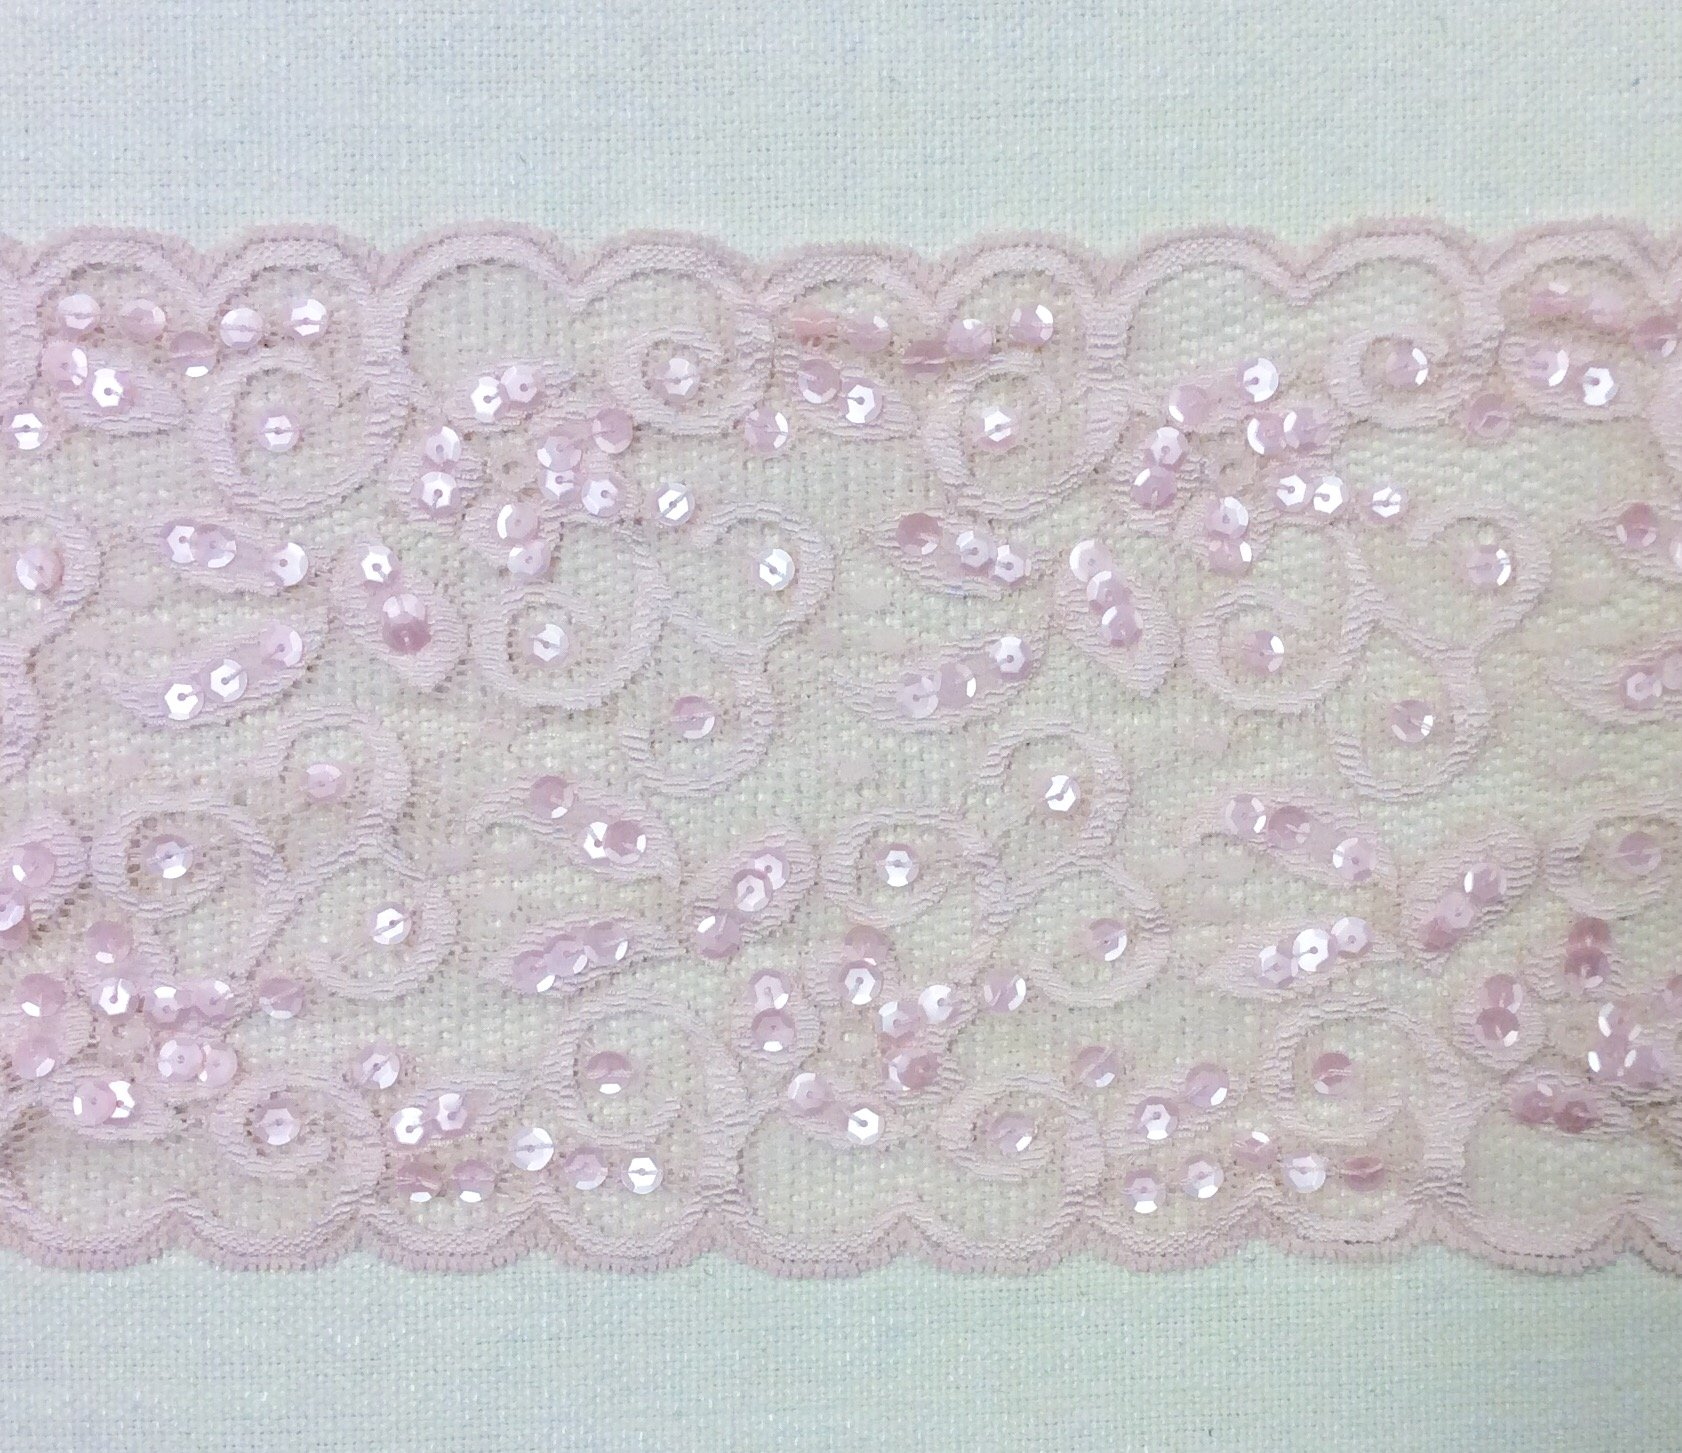 Pink Sequin Stretch Lace Ribbon Apparel Sewing Trim RM79